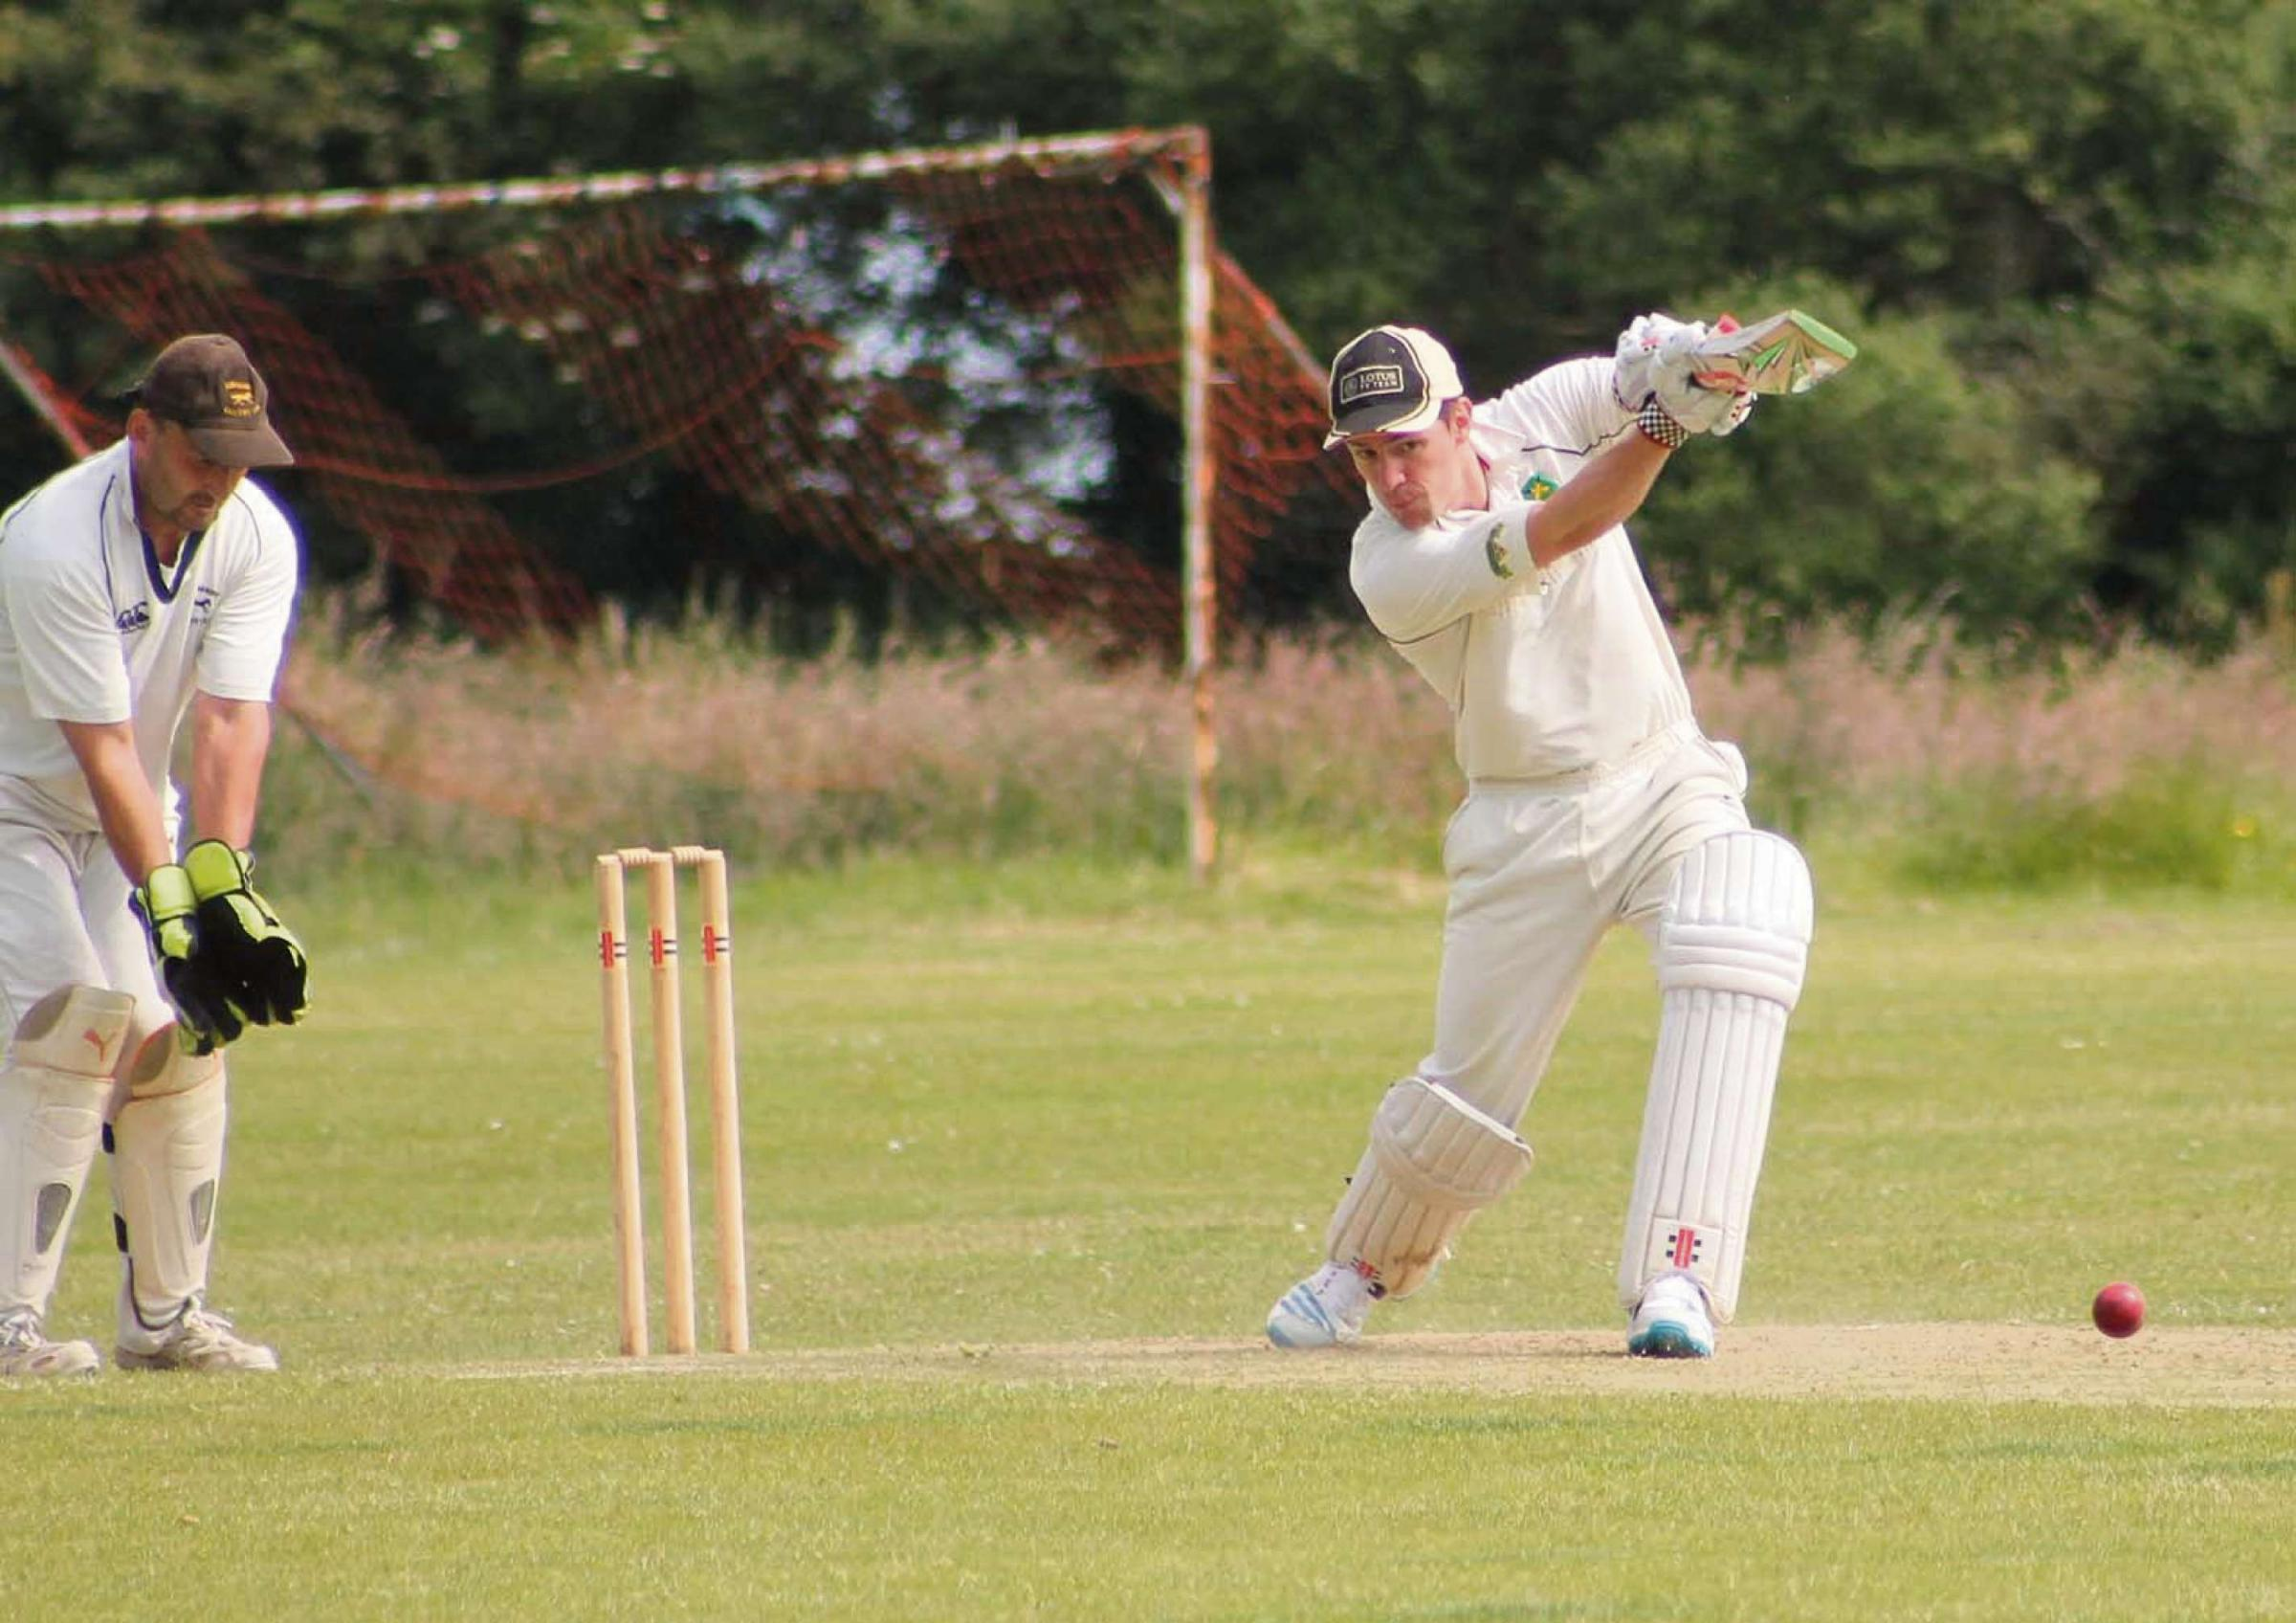 TOP KNOCK: Ben Jones drives a shot through the covers on his way to 46 for Llanrhian. (7397524)